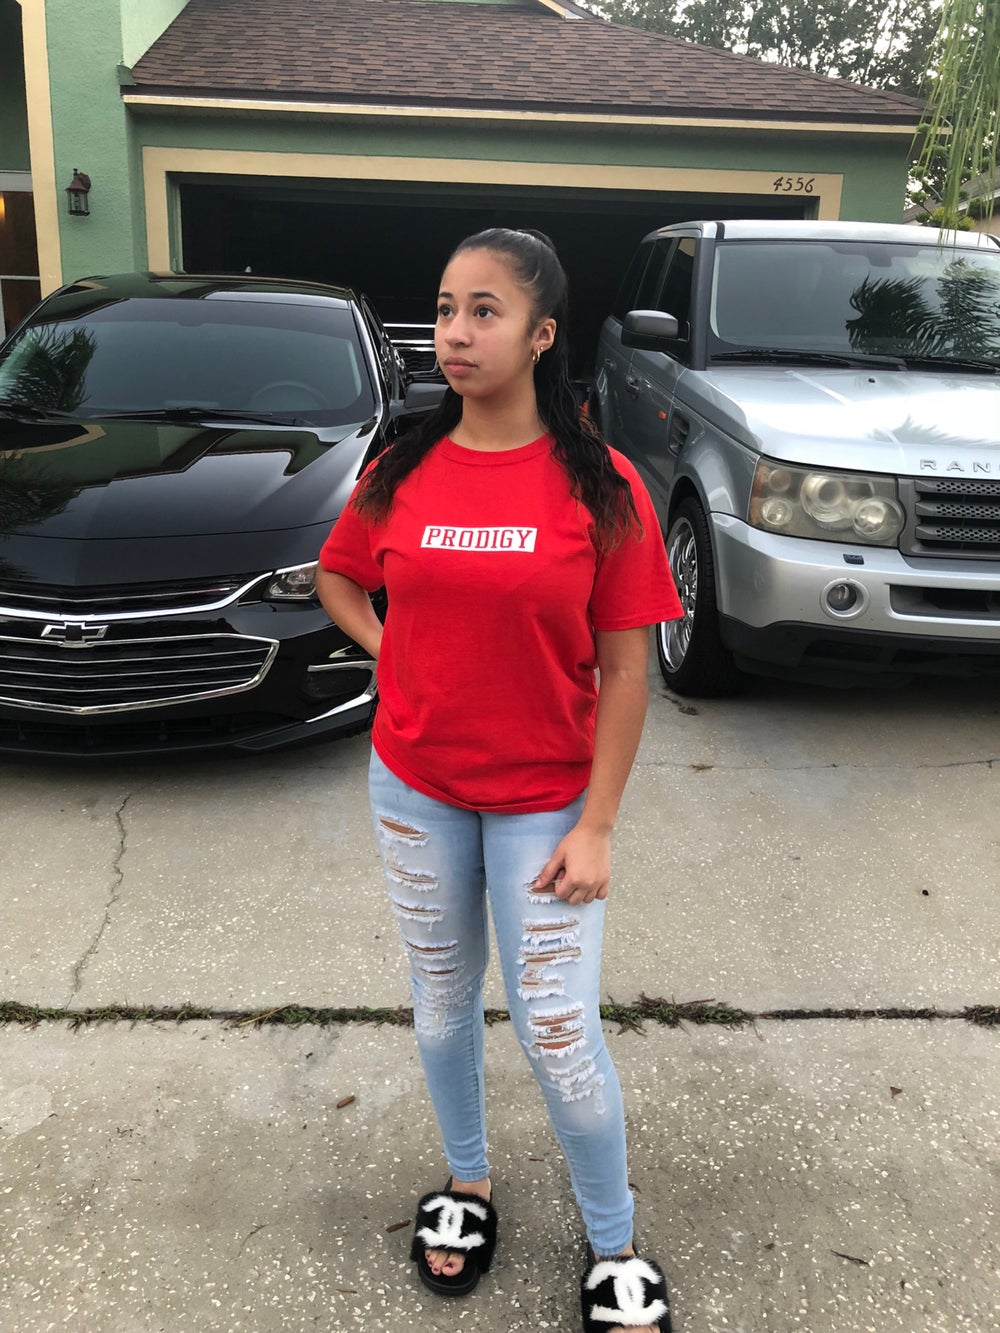 NEW BRAND PRODIGY RED T SHIRT WHITE LETTERING